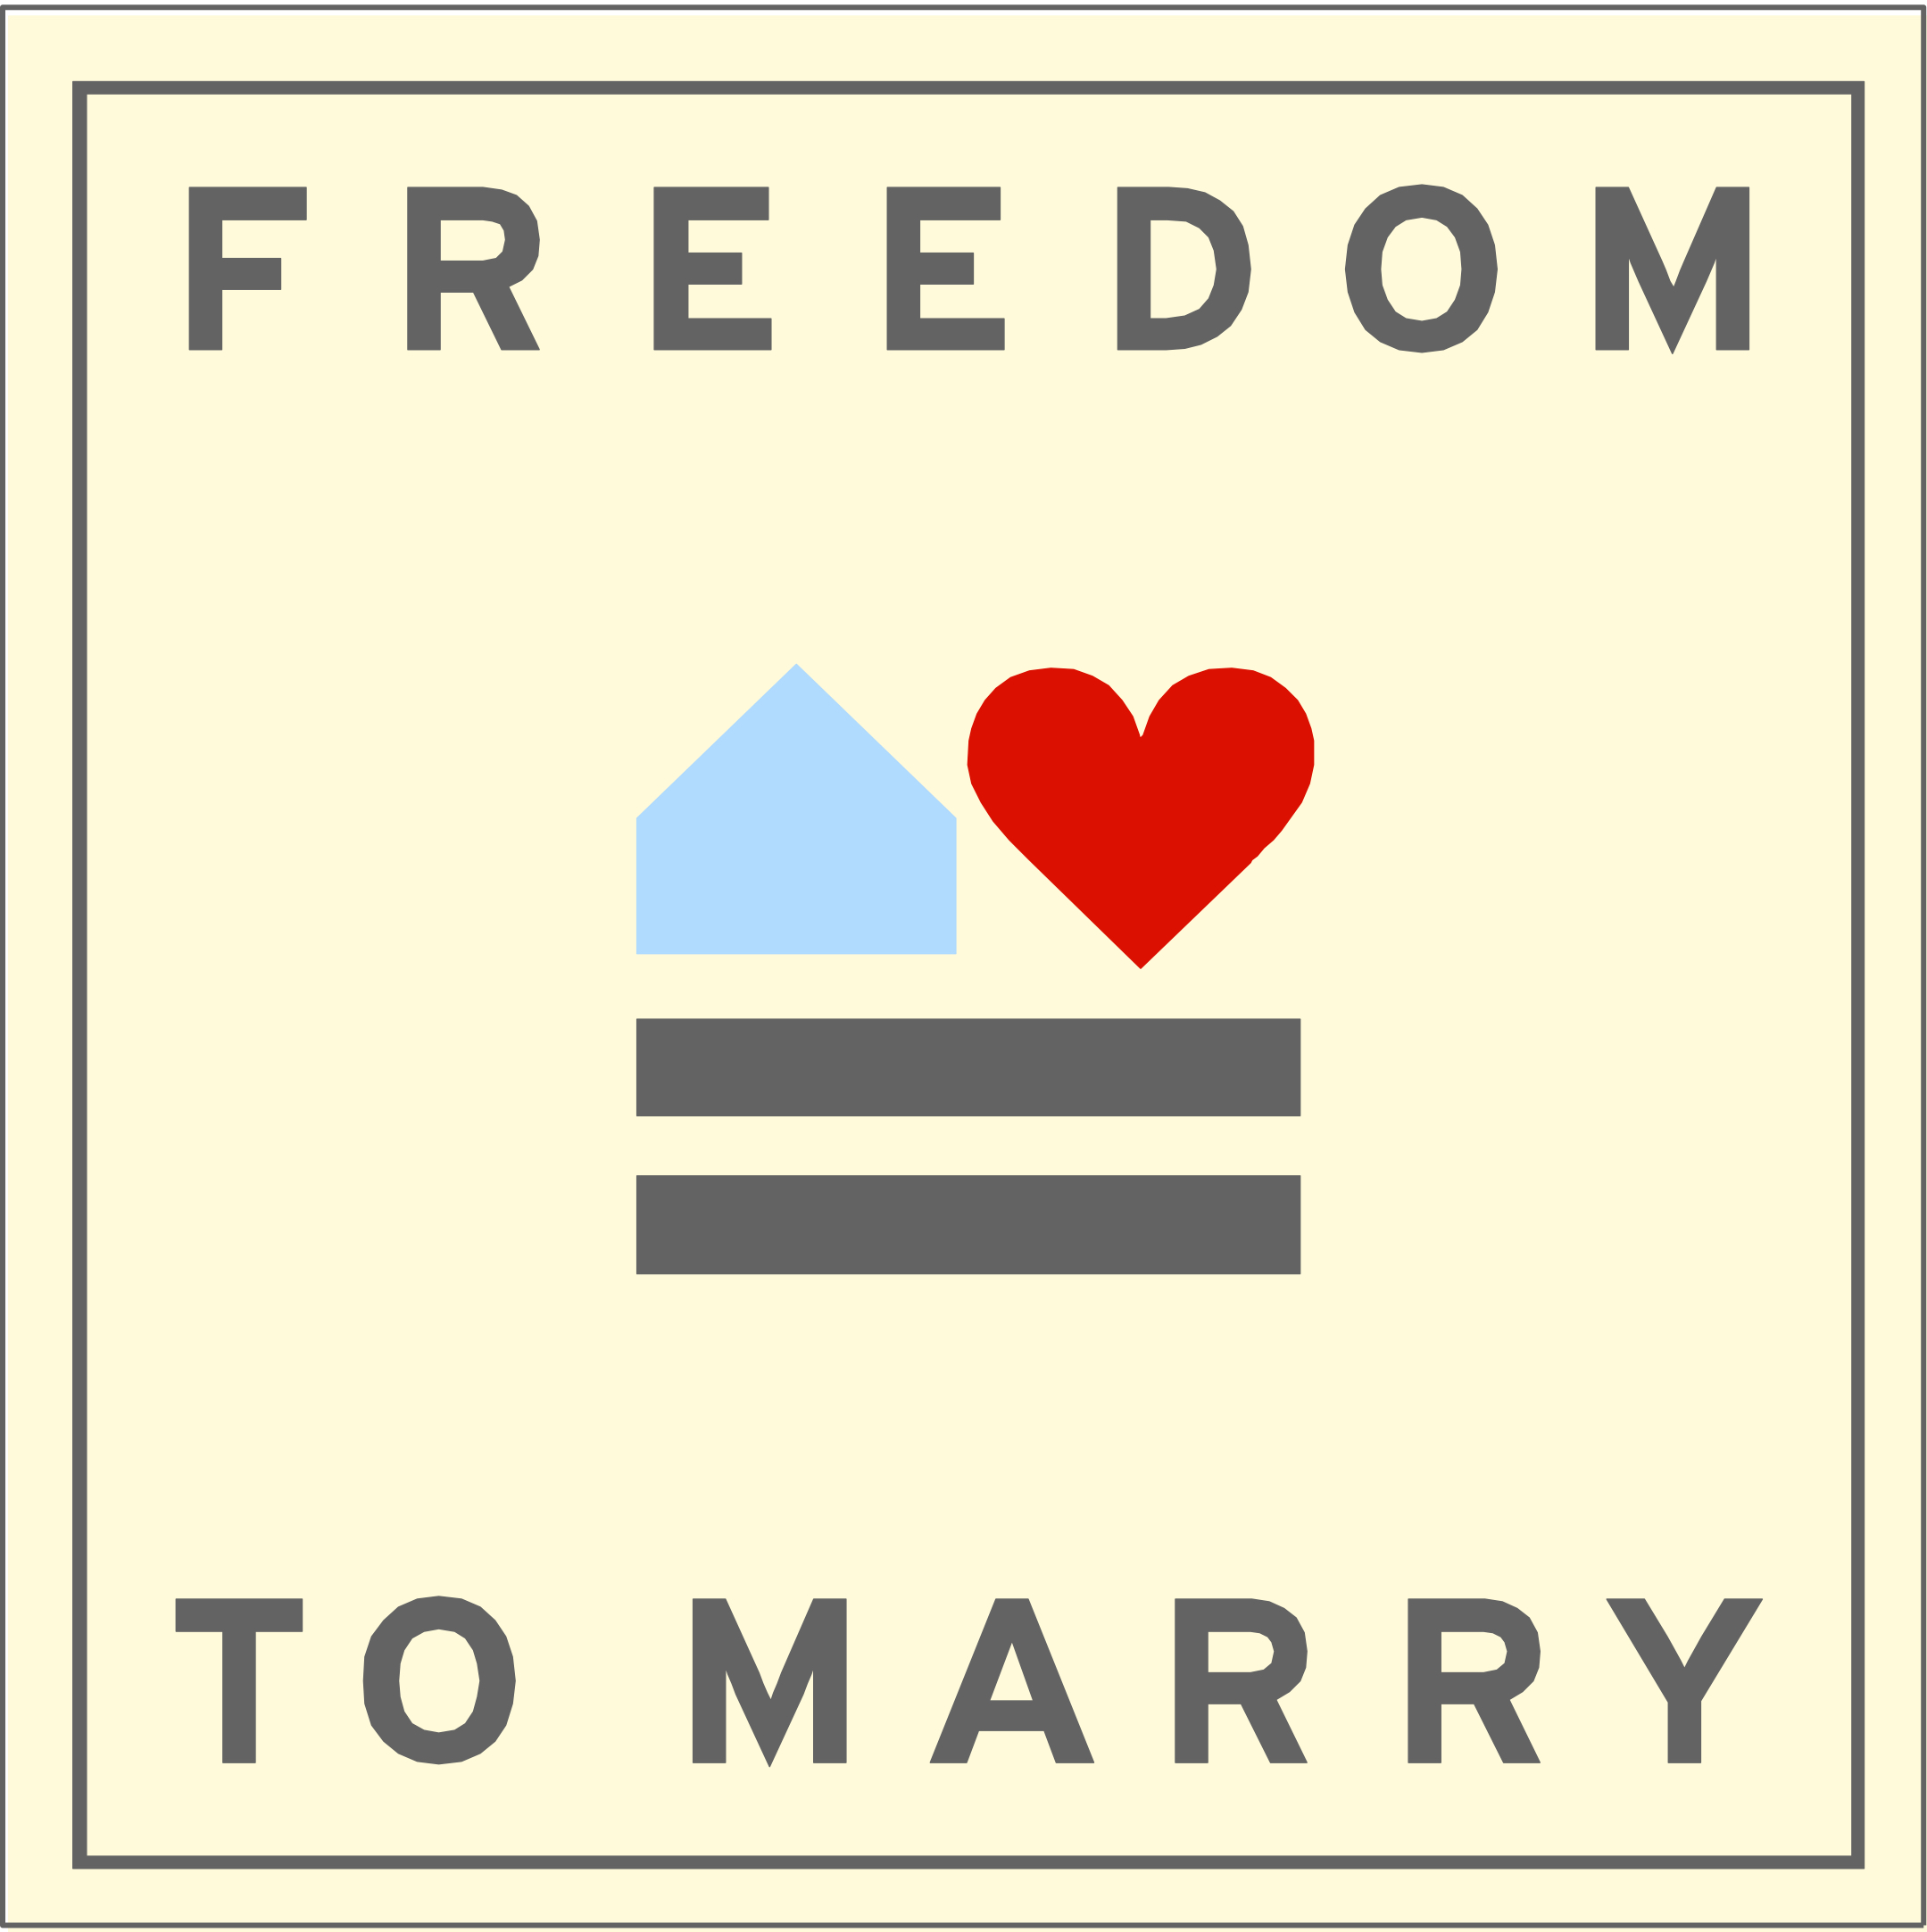 freedom to marry.jpg